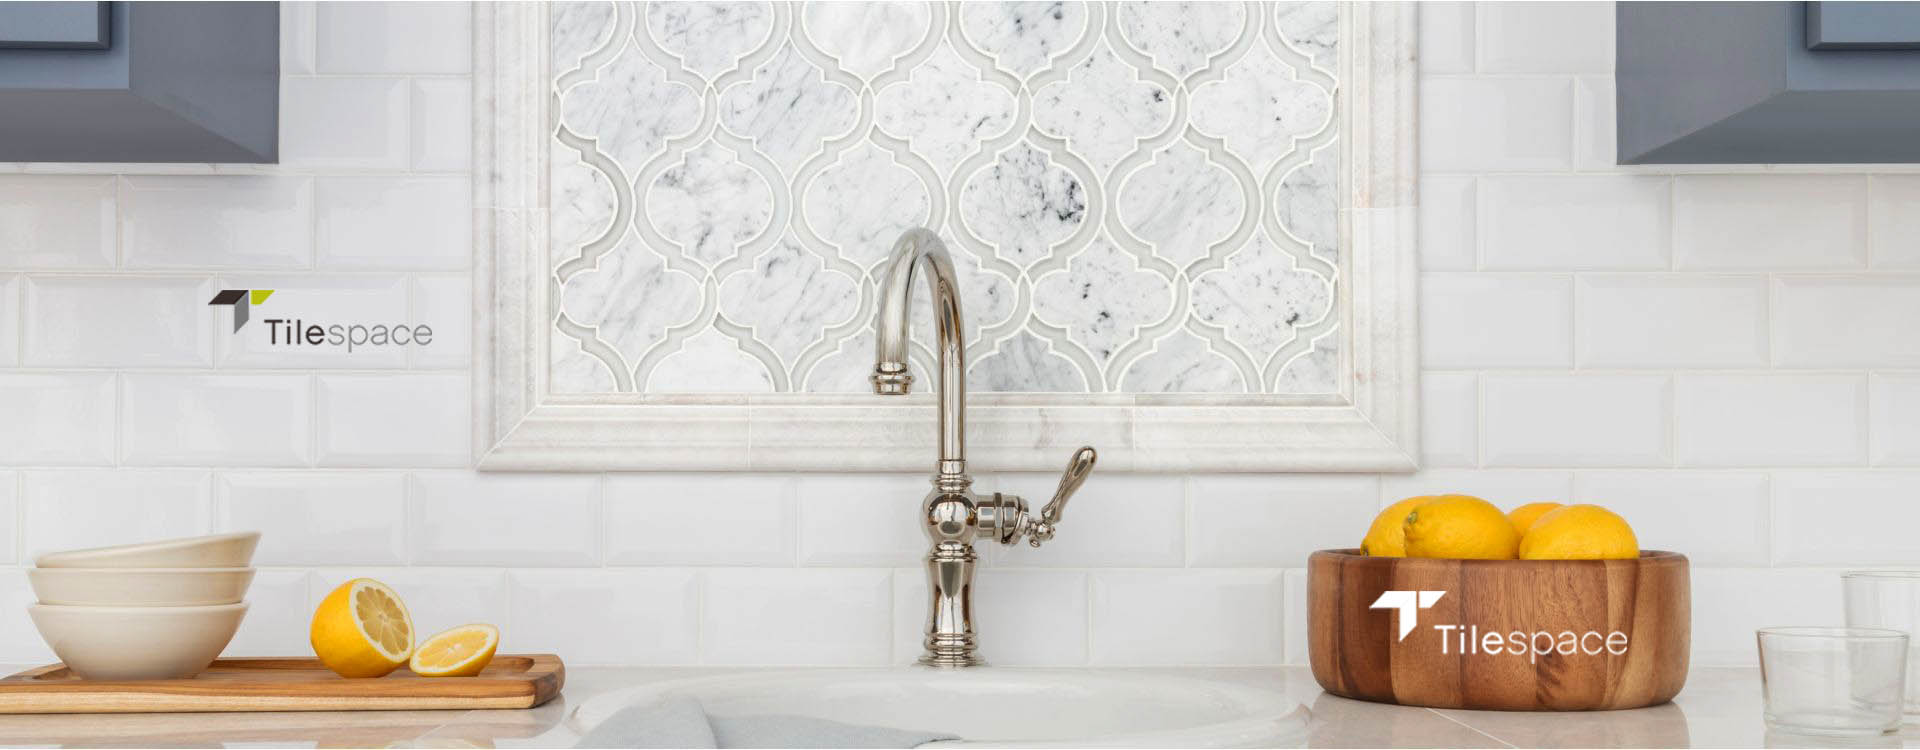 Bathroom and Kitchen Backsplash Tile 101 - Tiles For Sale ...